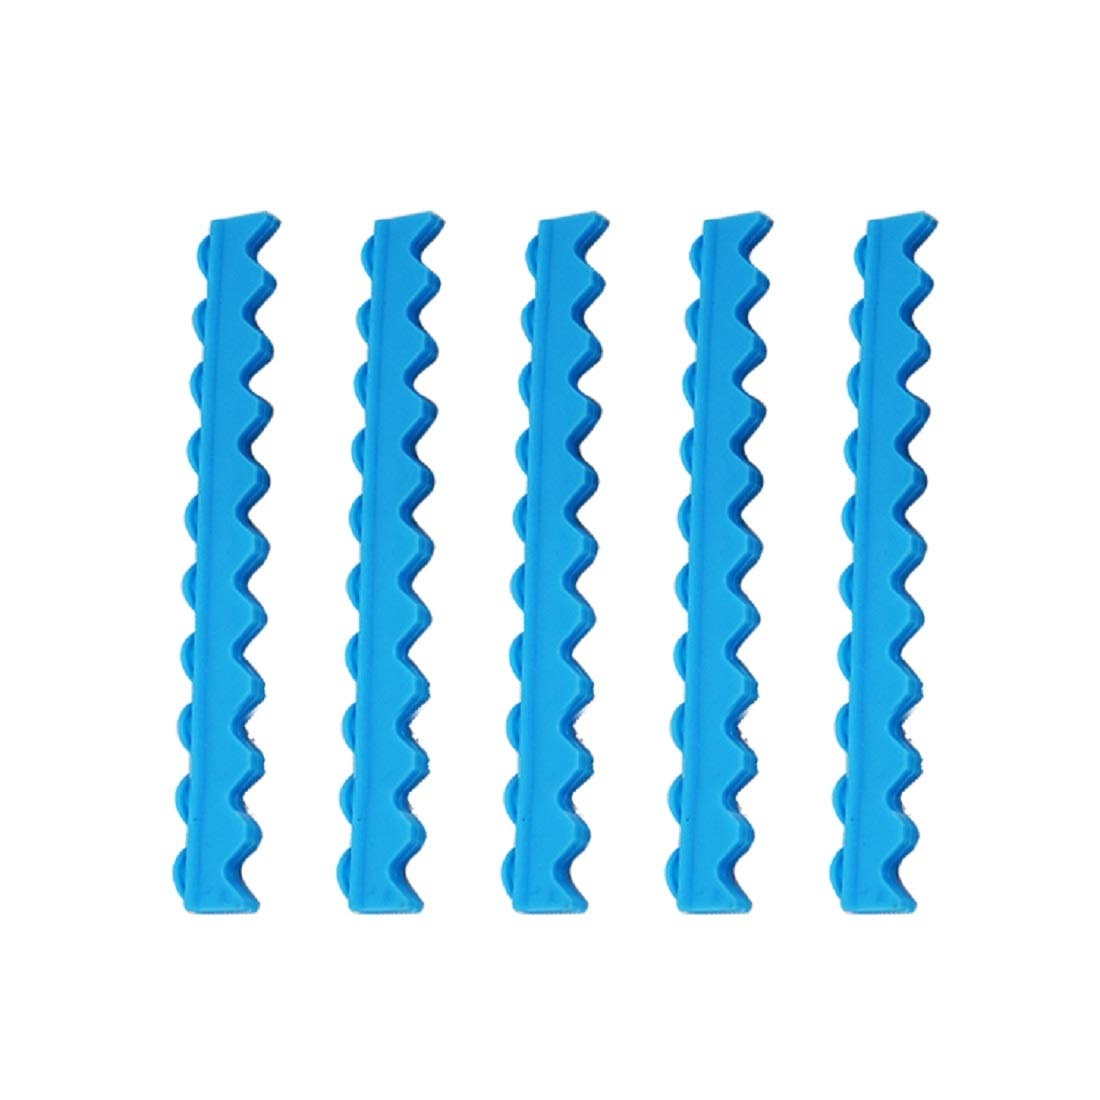 Tinsay Replacement Silicone Rubber Insert Holder for Dental 10 Instruments Cassette Blue 3pc/1set